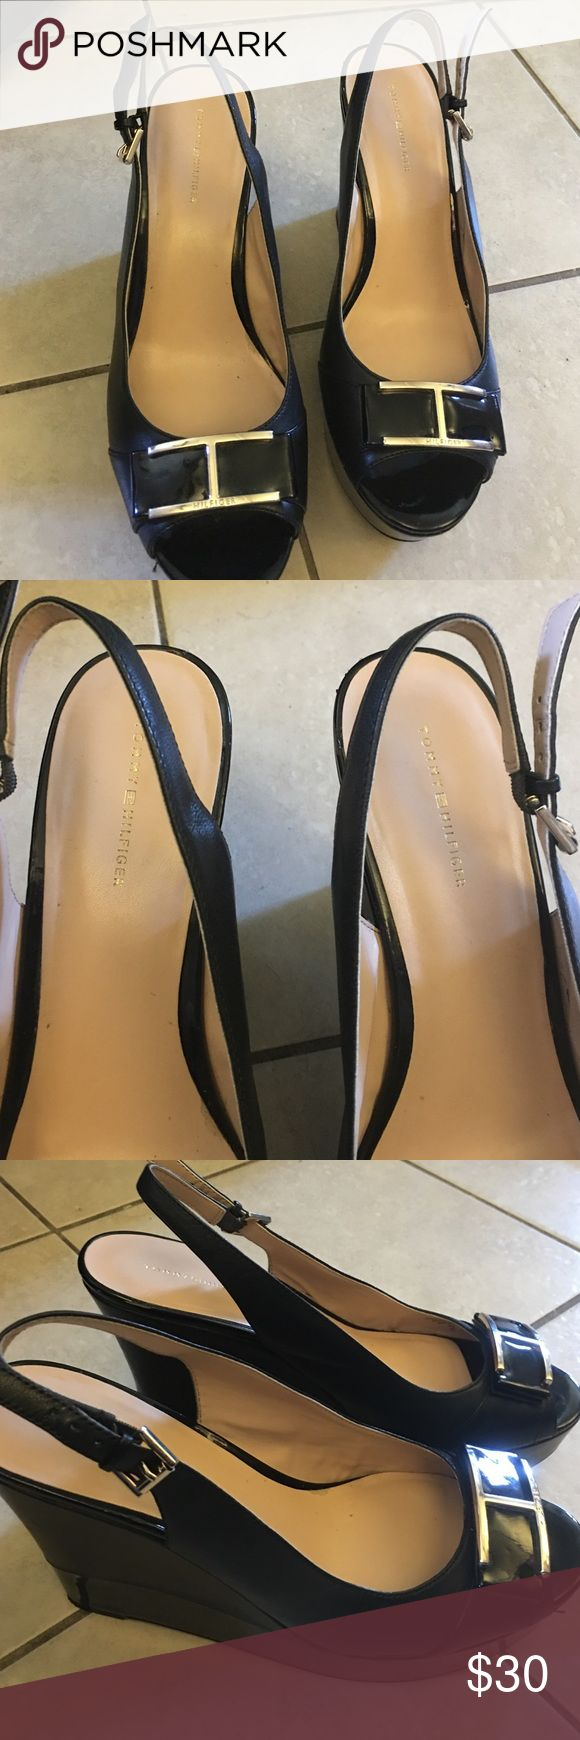 Heels from Tommy Hilfiger In good conditions Tommy Hilfiger Shoes Heels